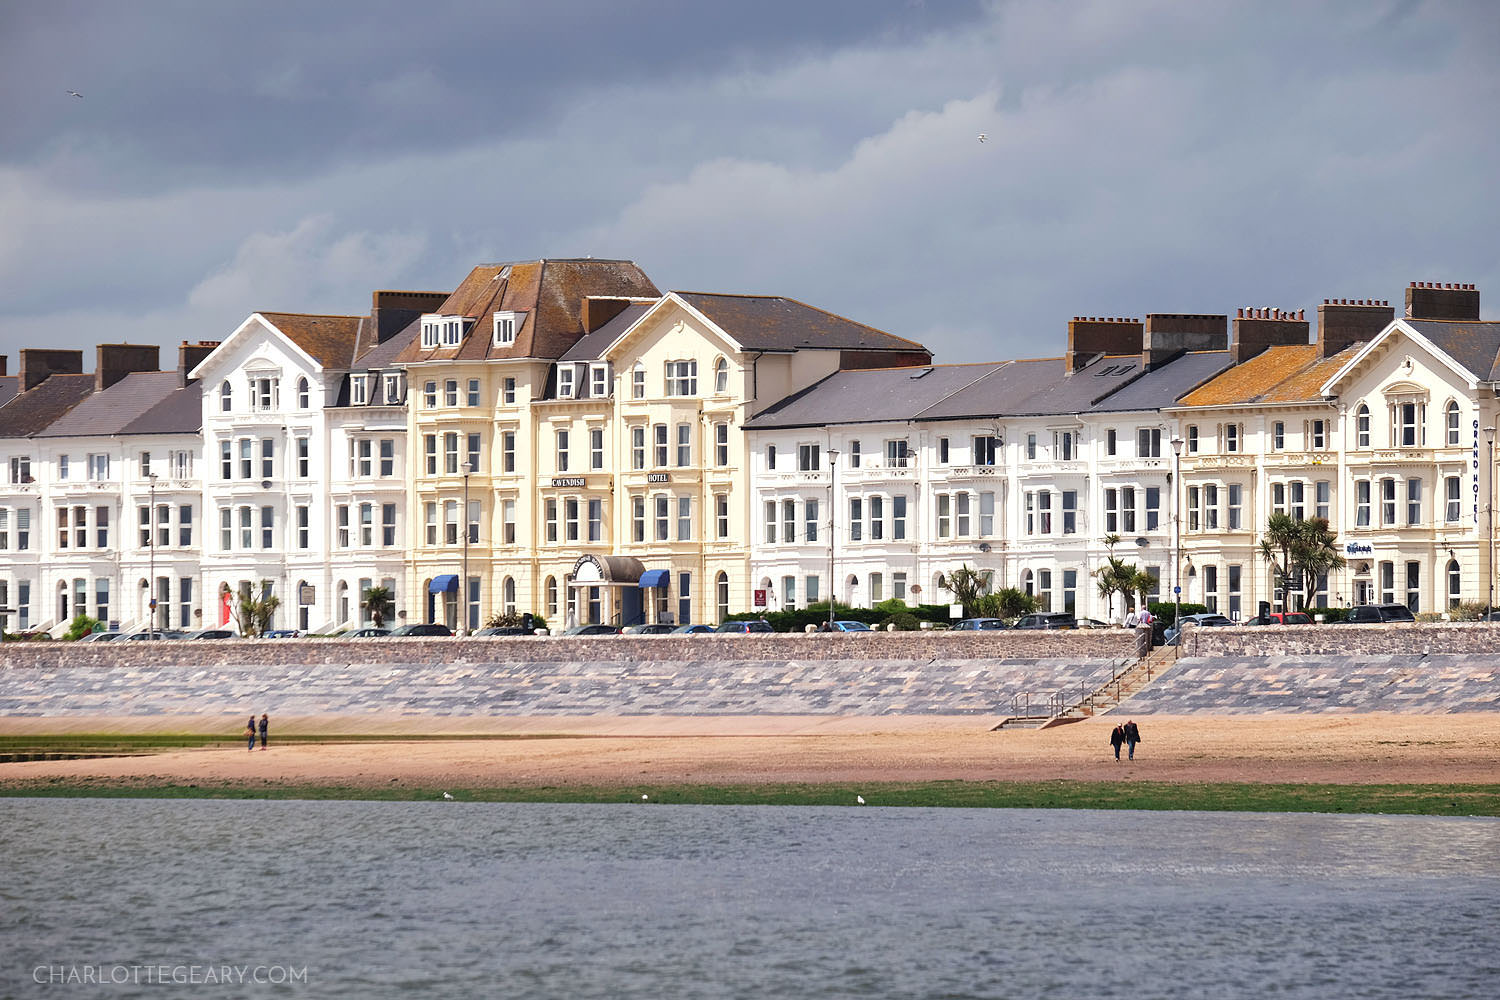 Waterfront homes in Exmouth